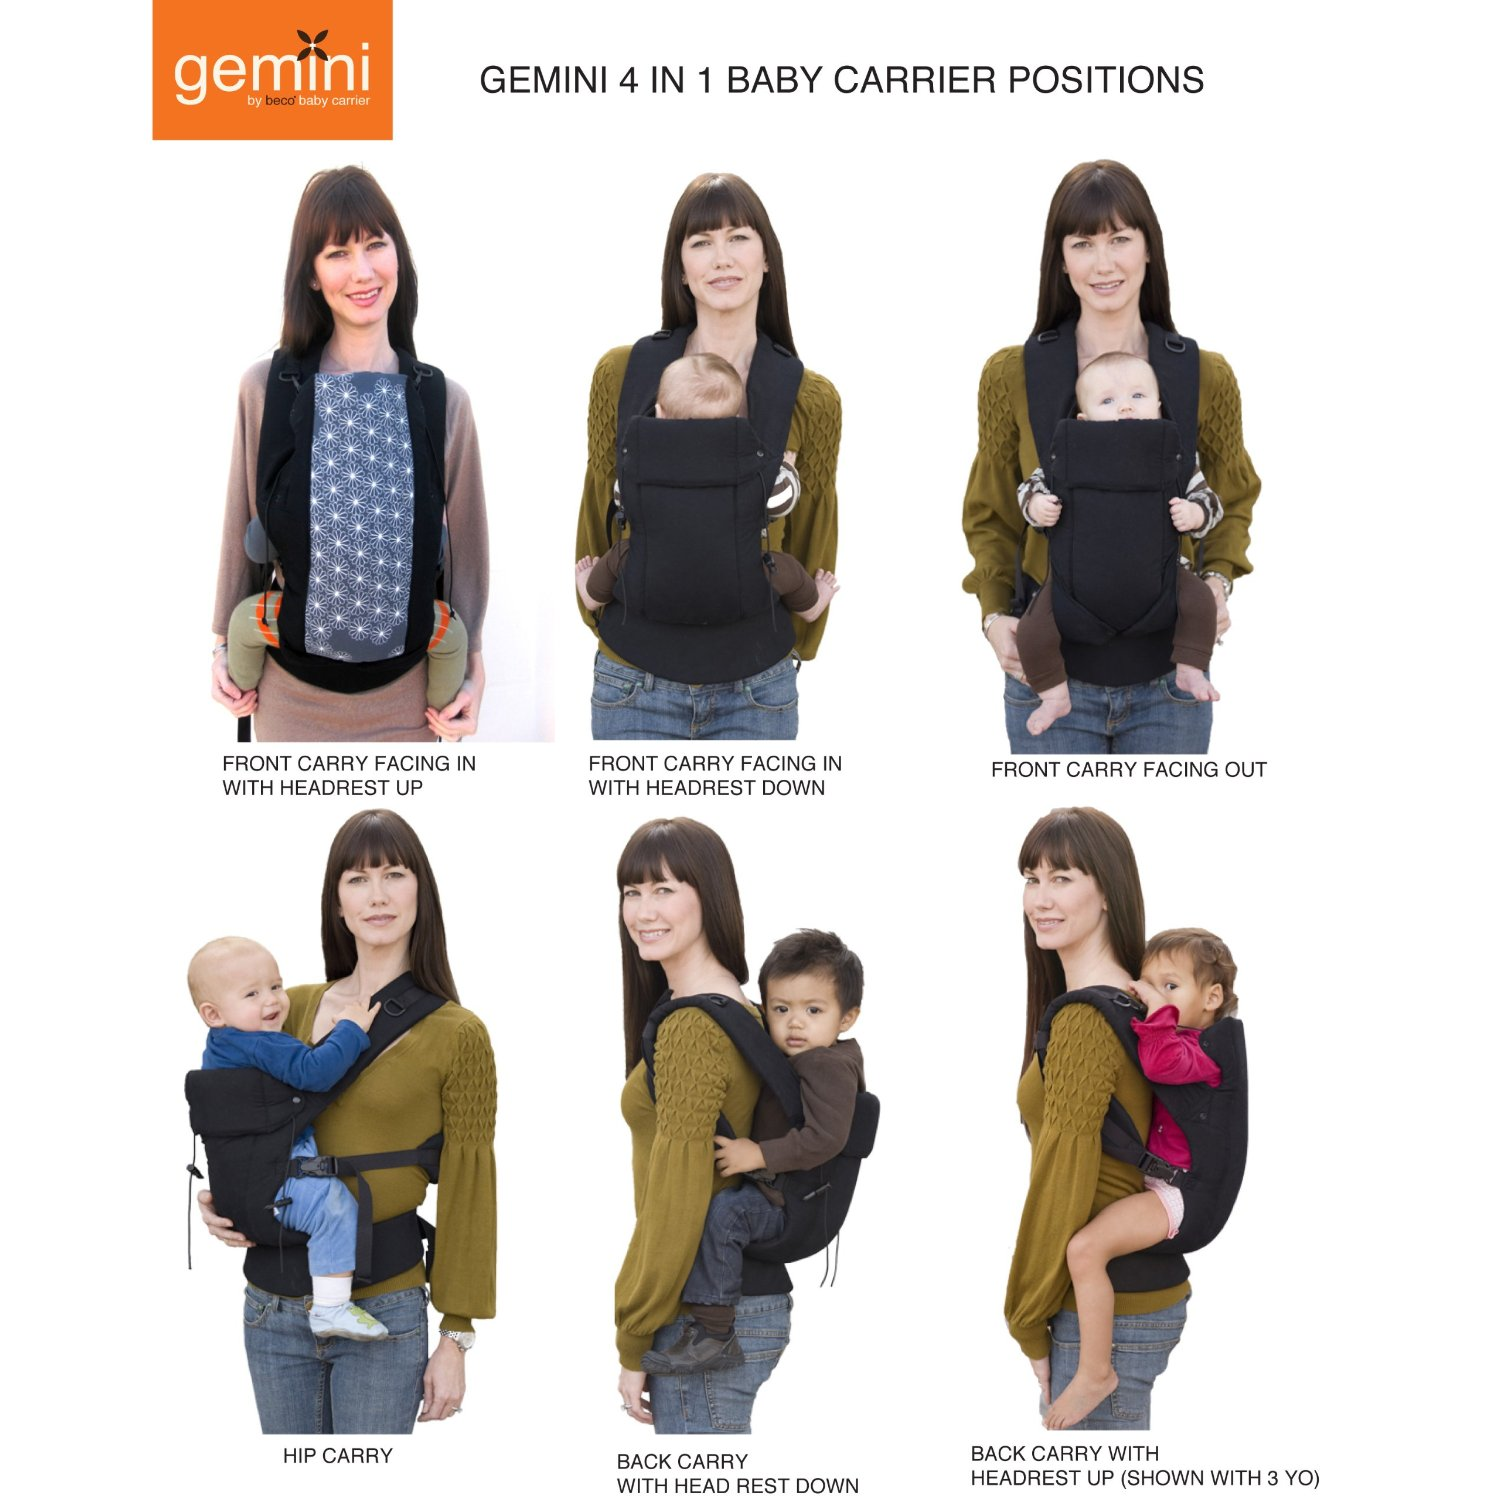 ergo carrier positions